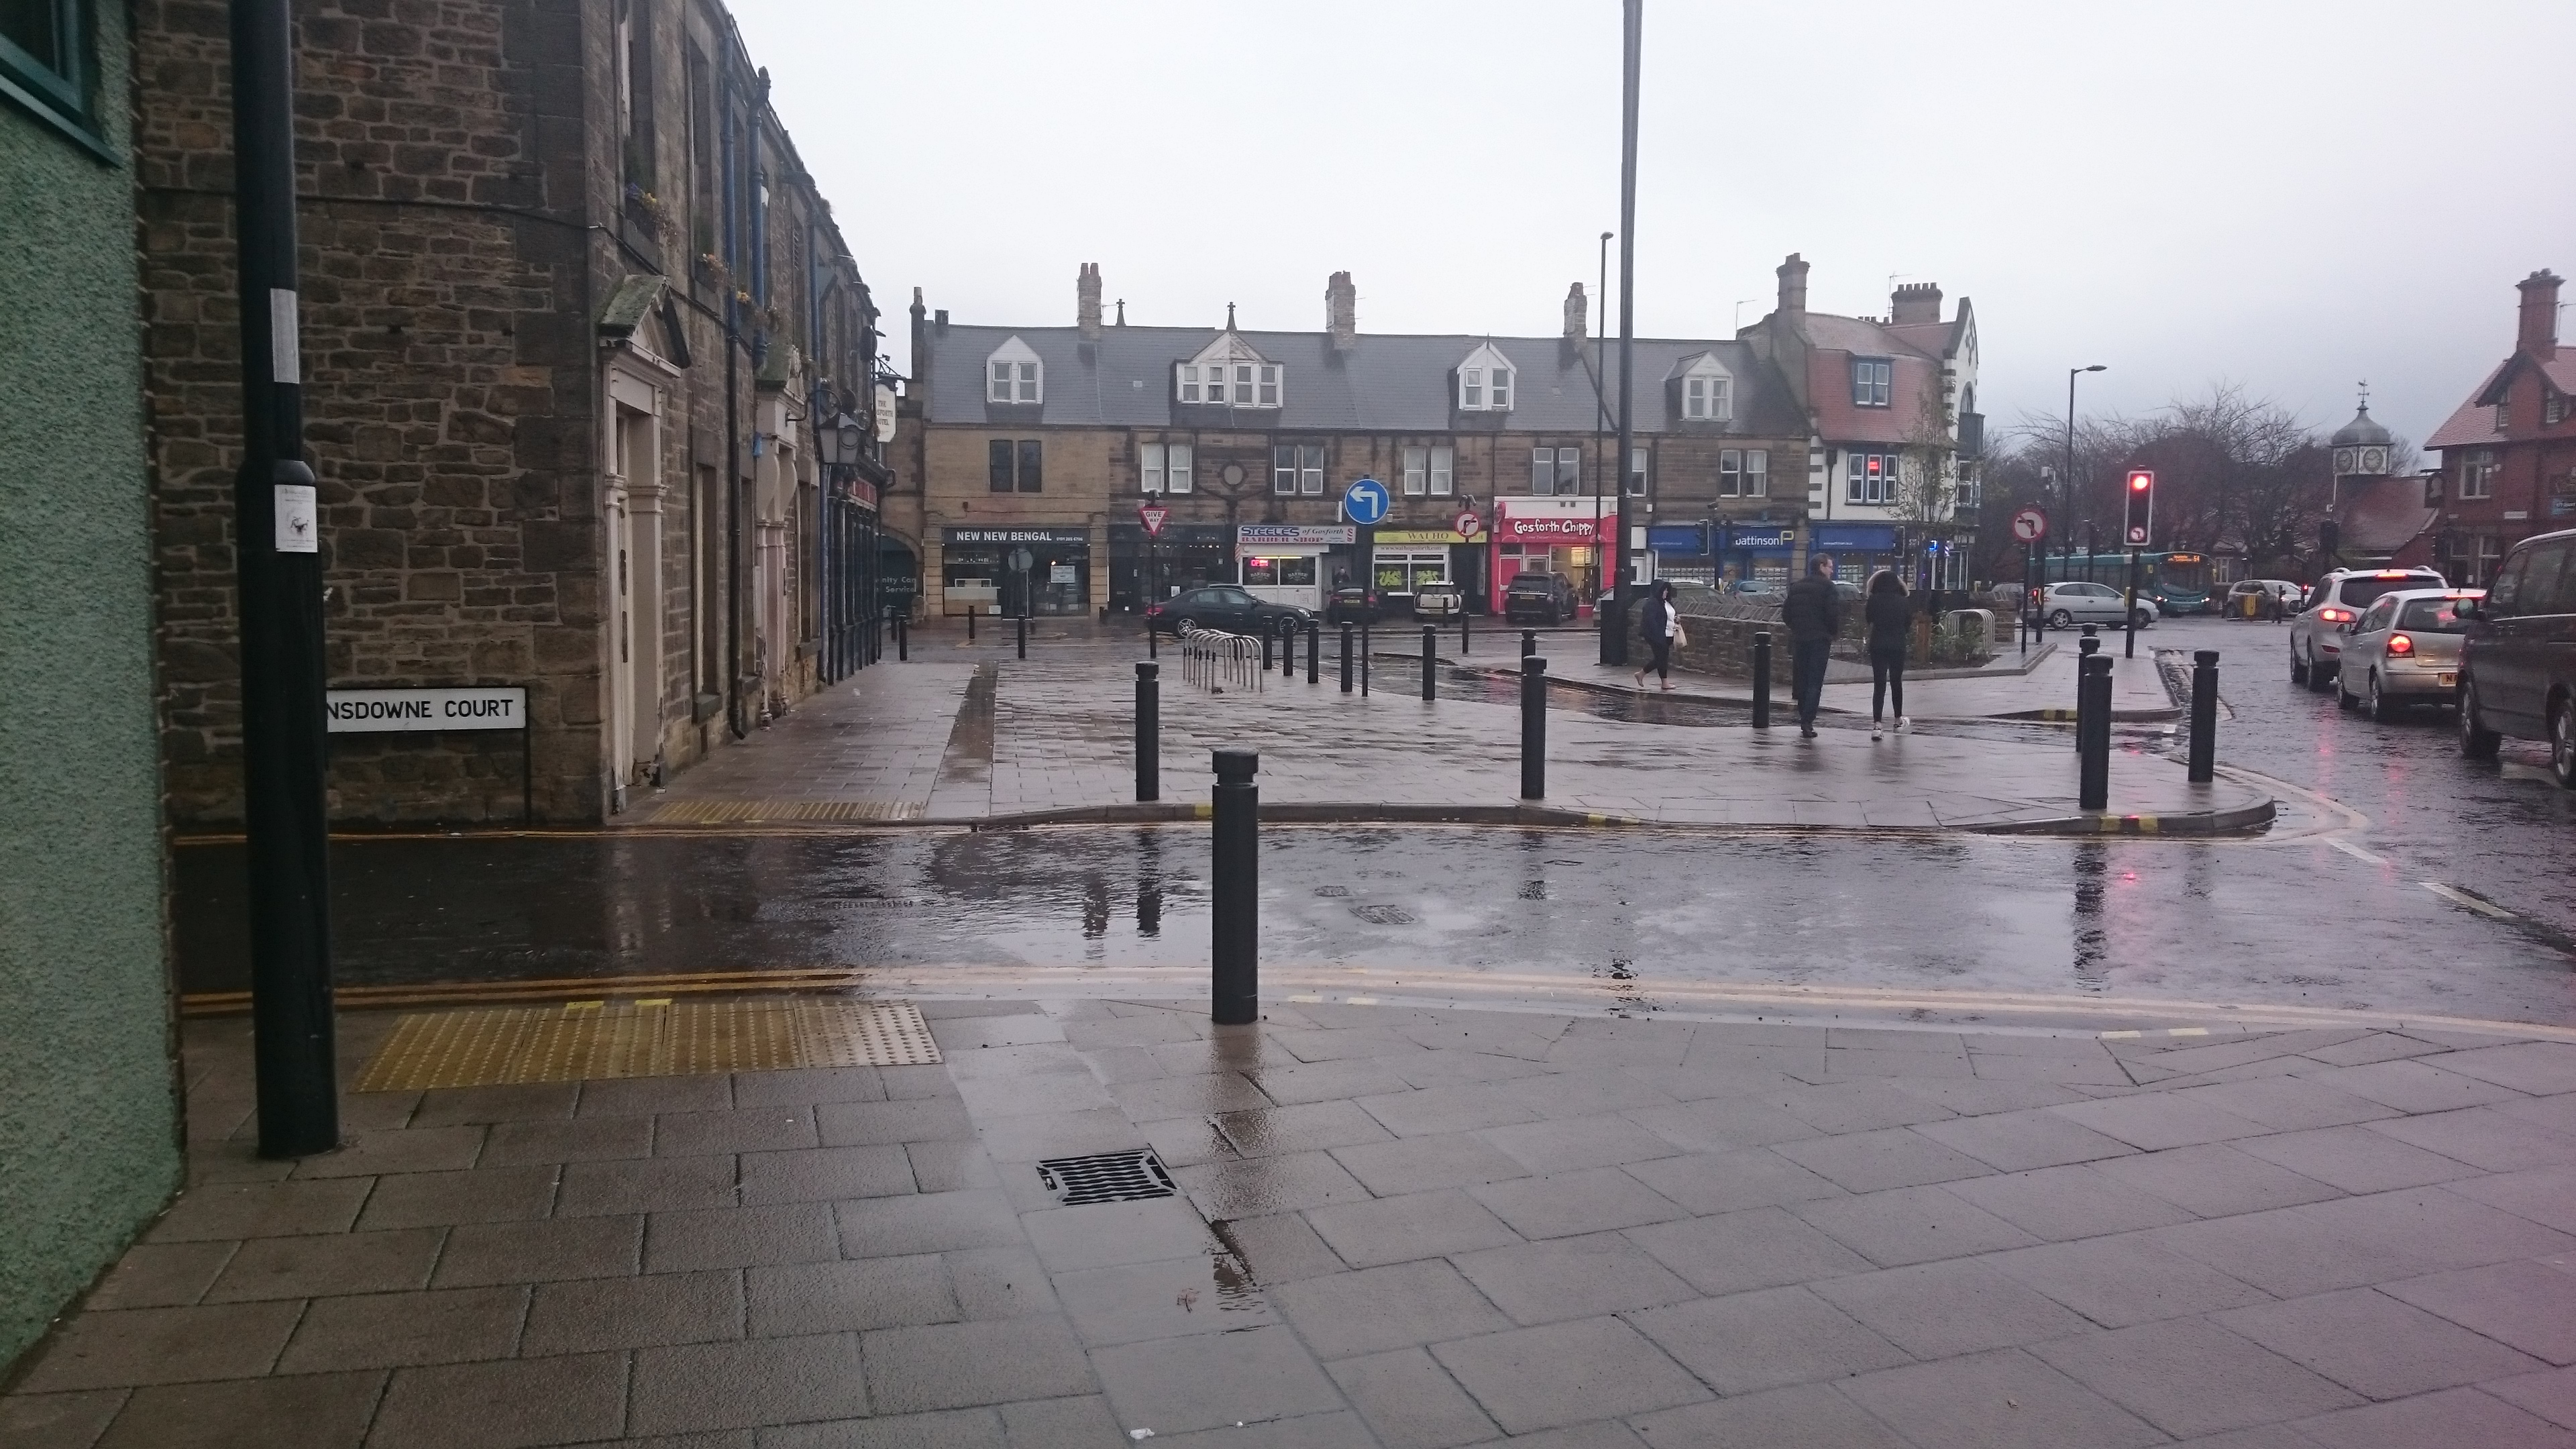 image of area outside of the gosforth hotel looking down salters road showing the tactile paving before the gosforth hotel